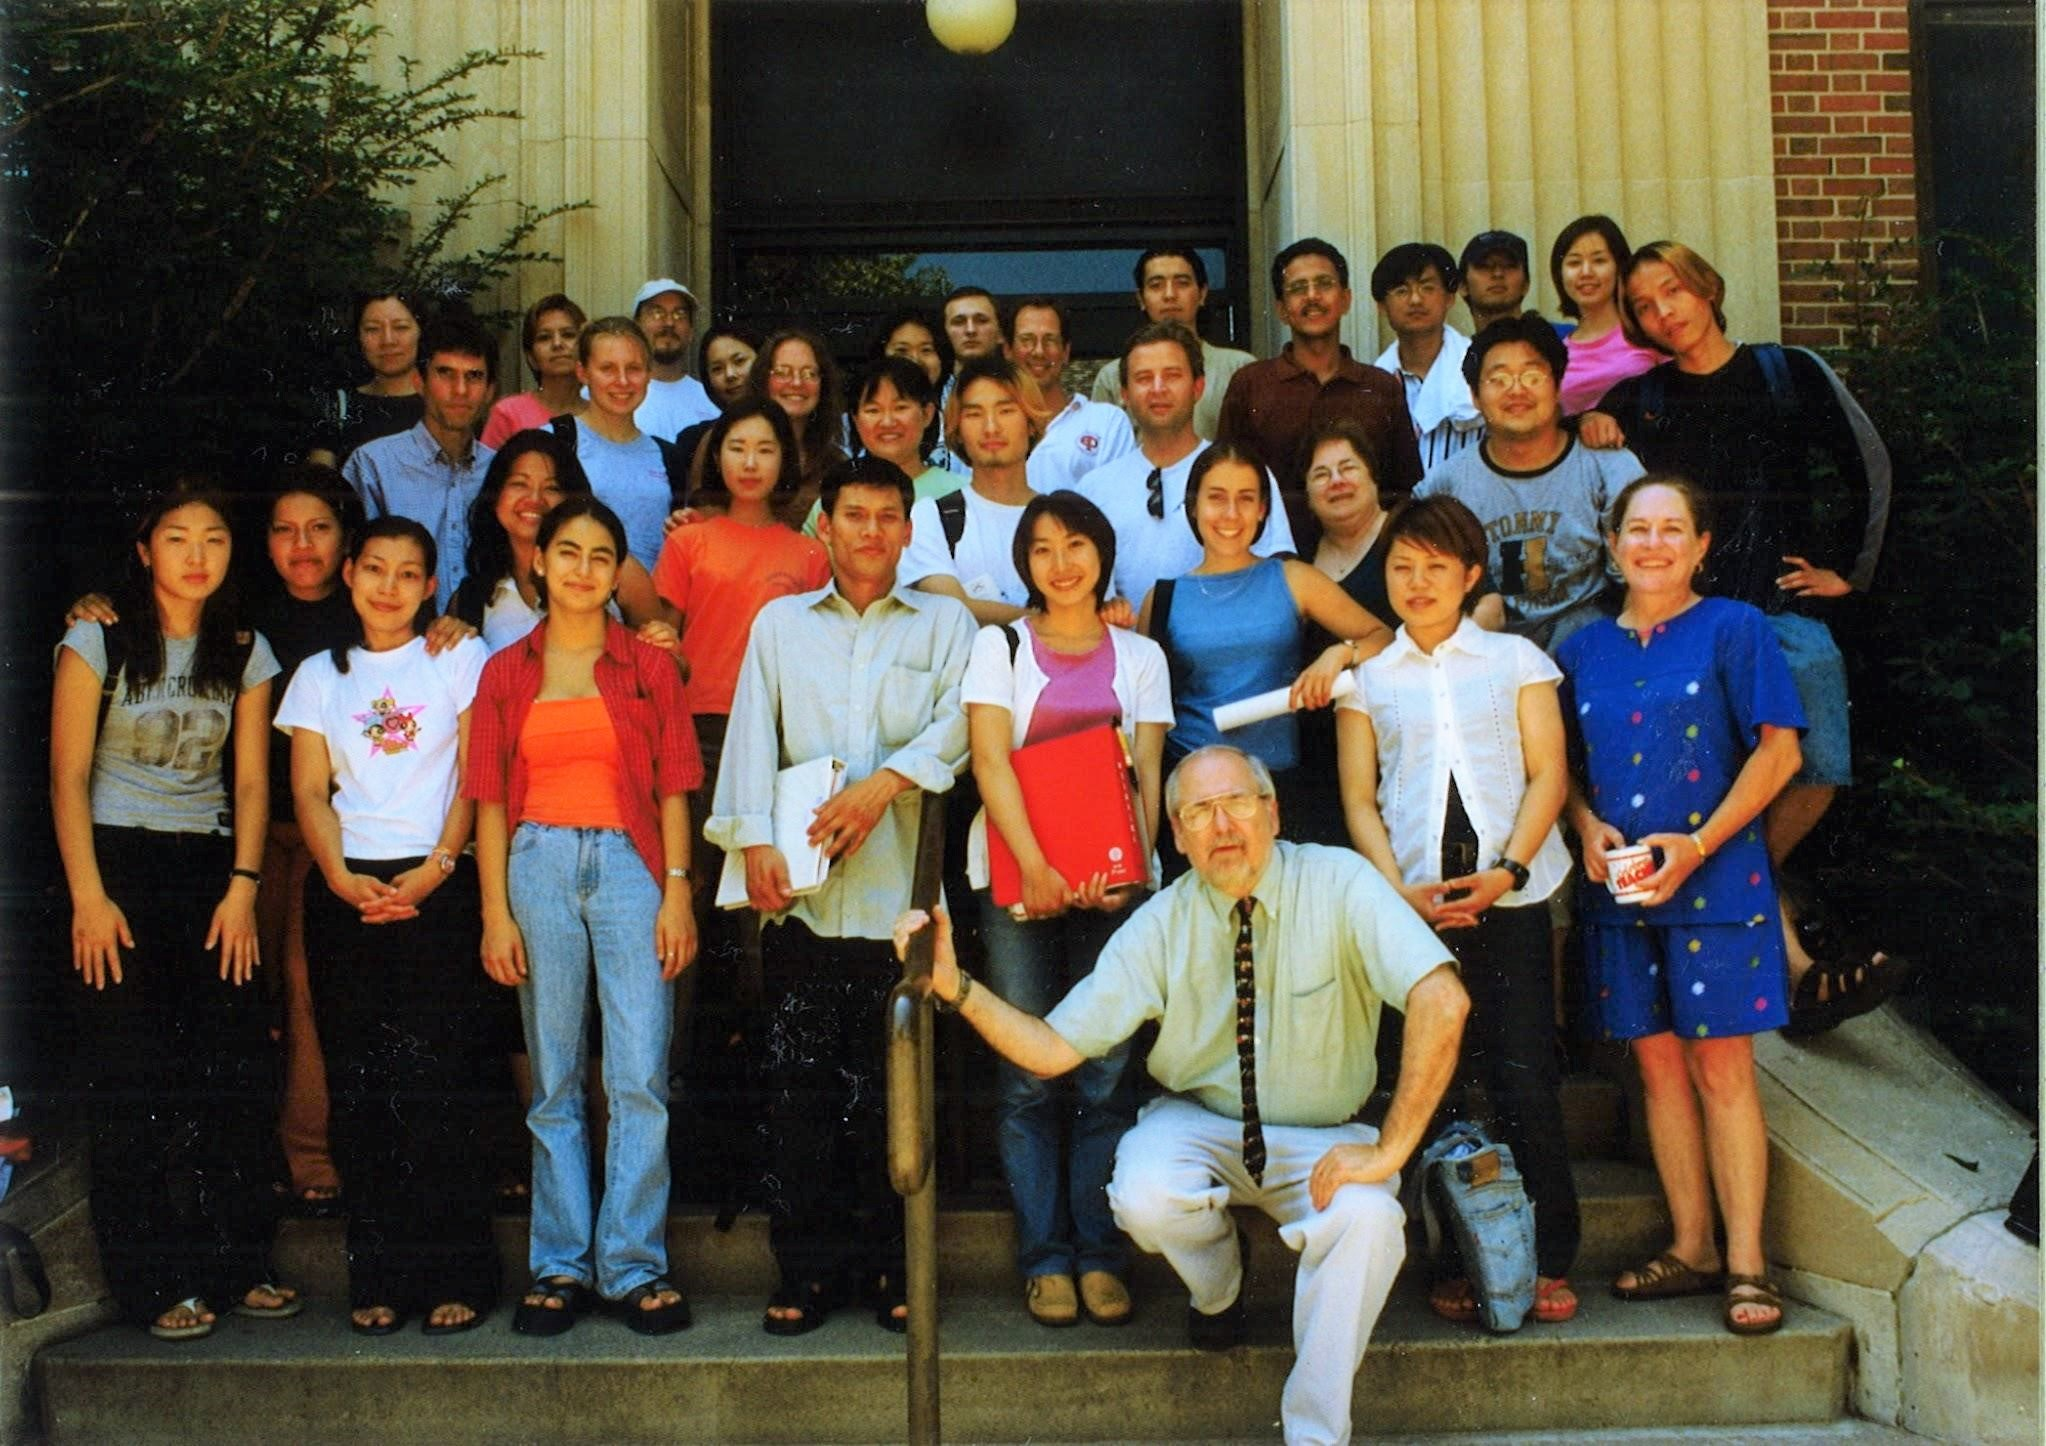 PIESL lecturers and staff pose with some of the summer program students in 2001.